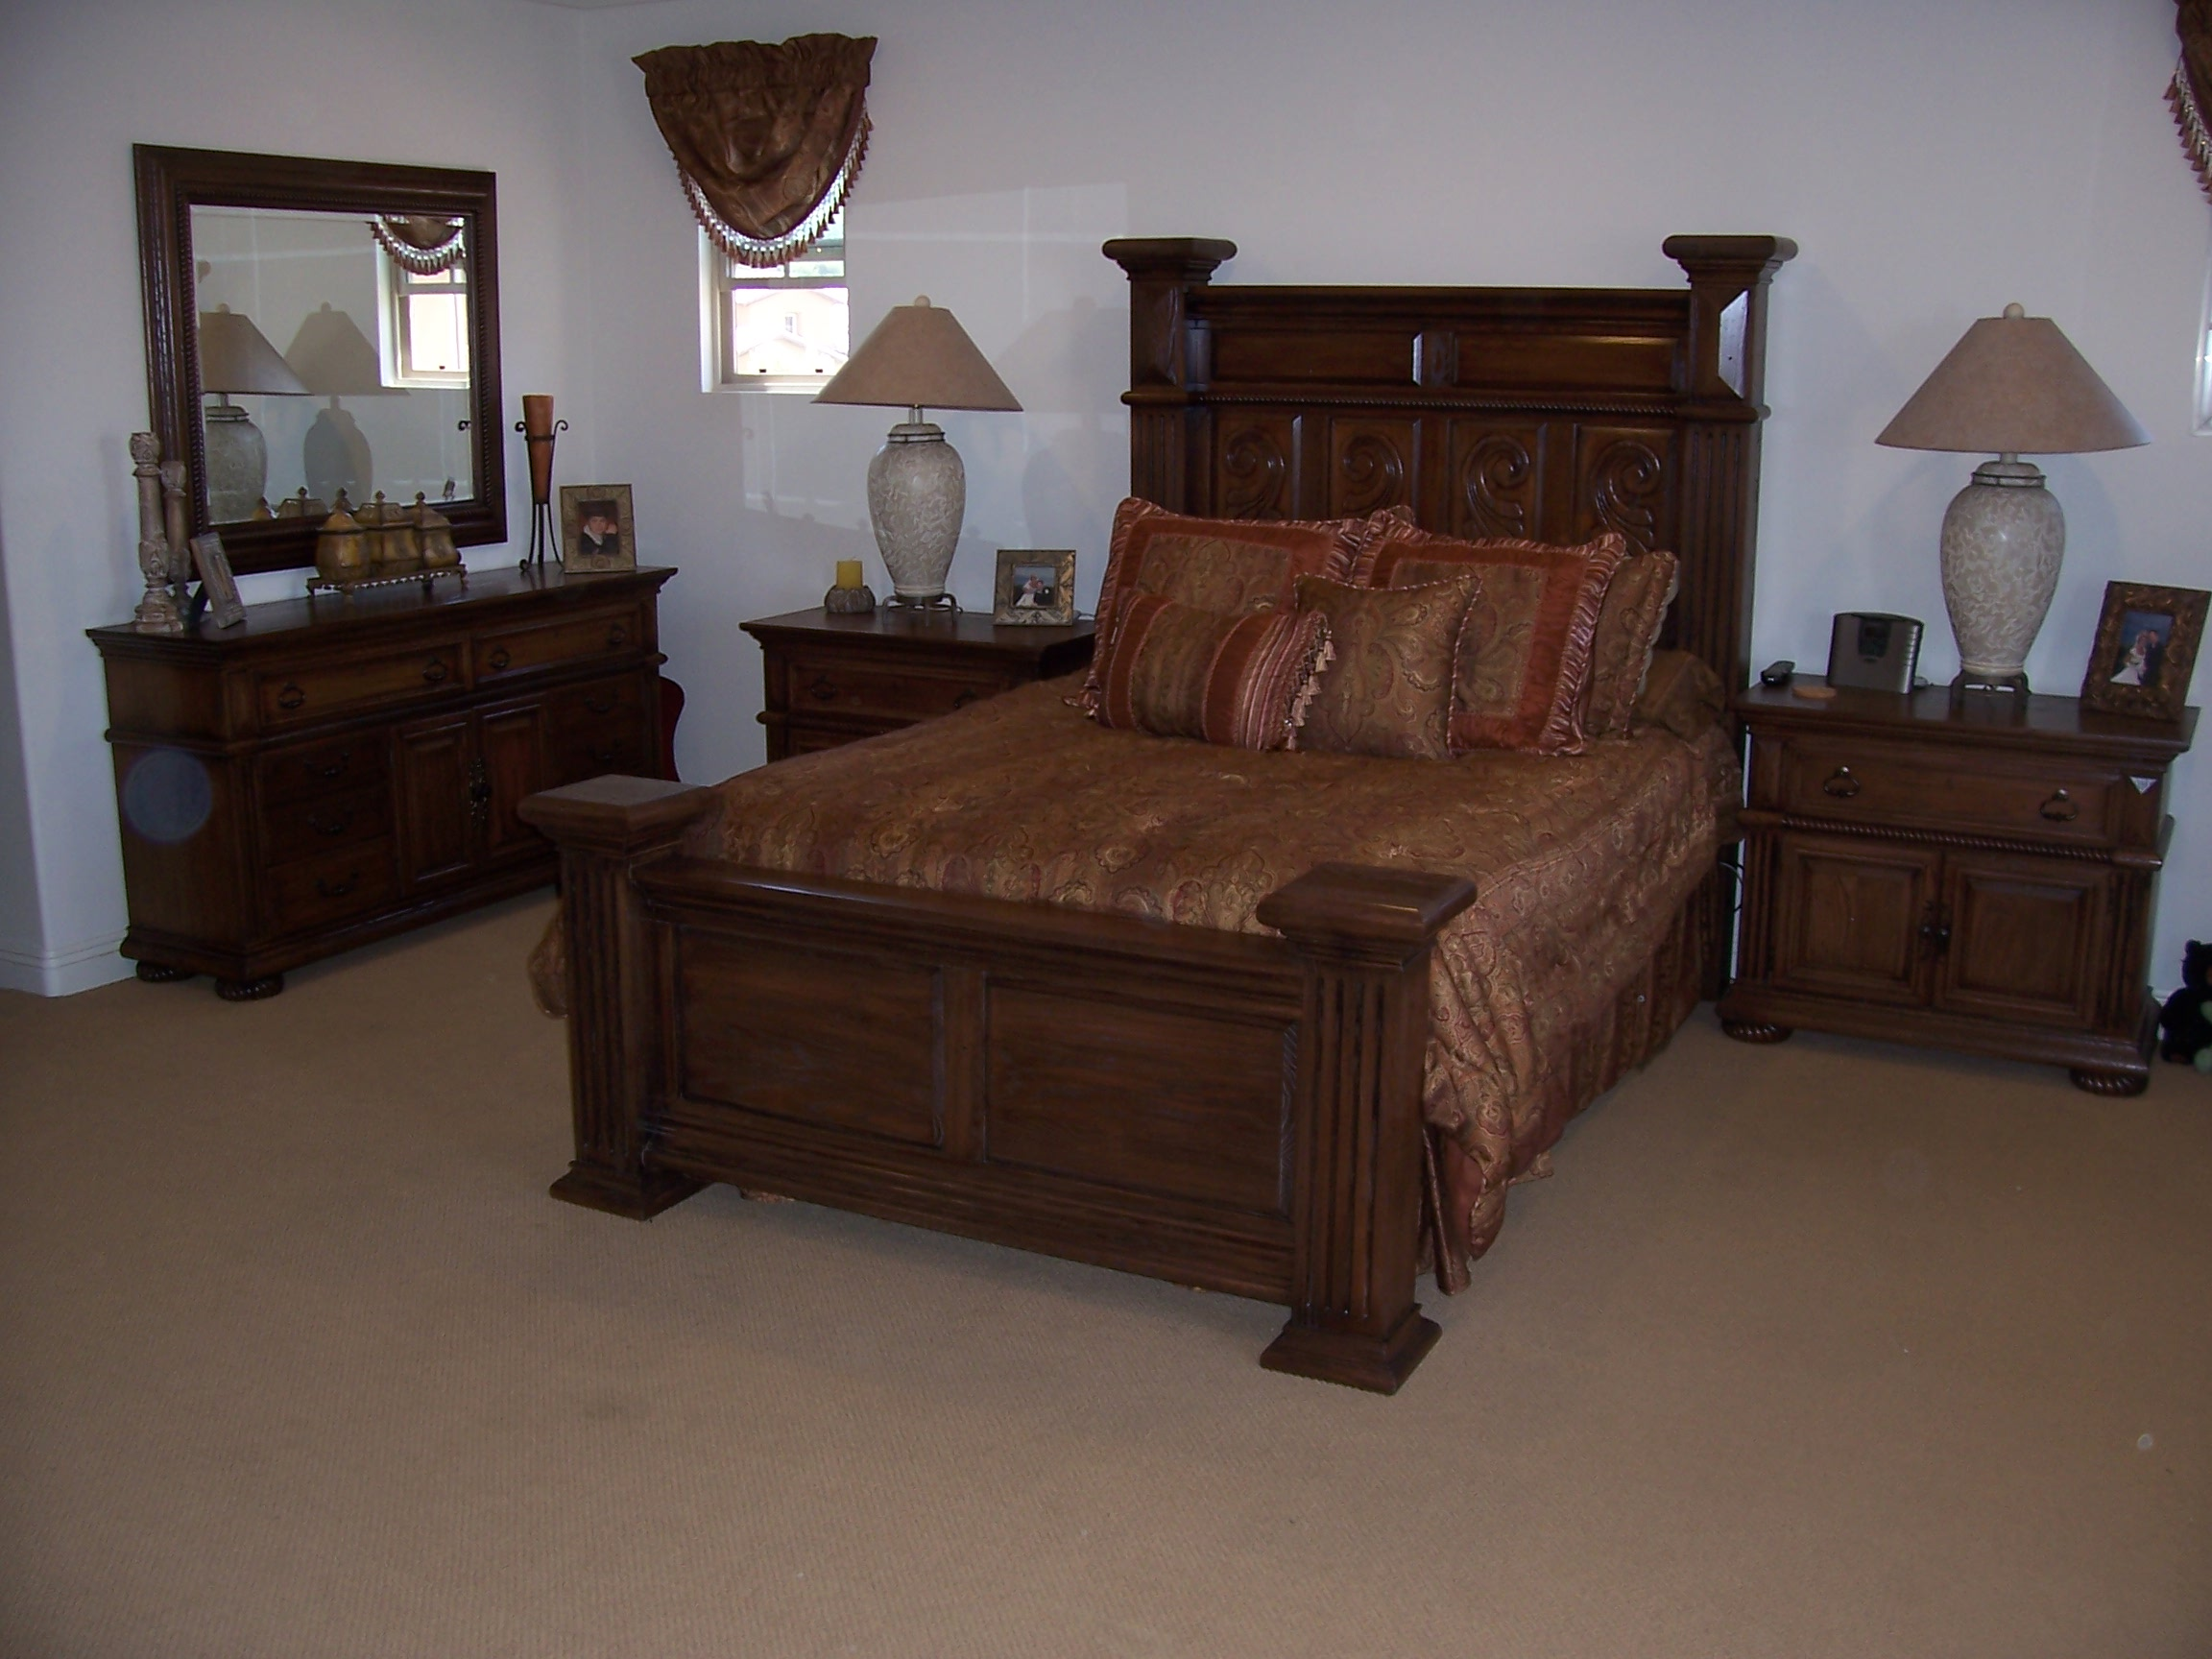 Furniture Refinishing   Antique Restoration of All Sorts. Furniture Refinishing   Furniture Repair Service   Furniture